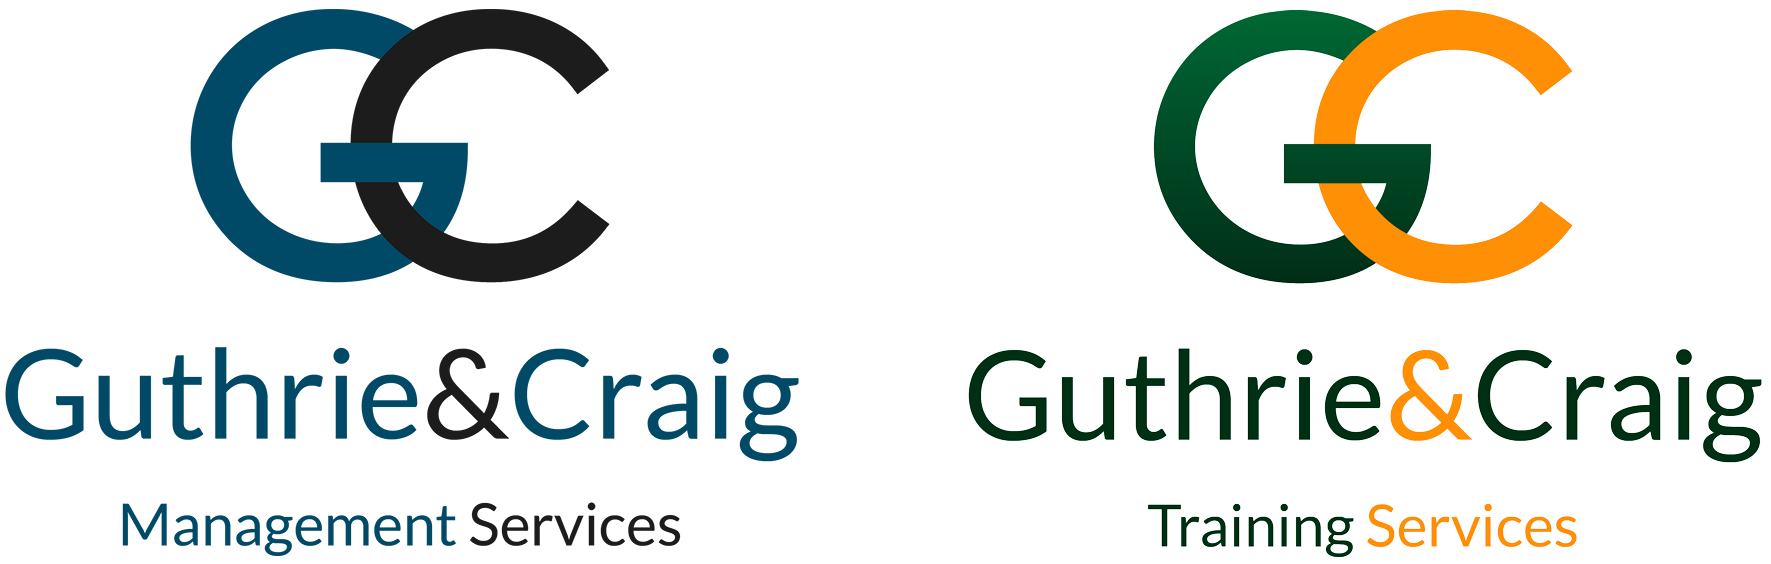 Guthrie and Craig (Management Services) Ltd & Guthrie and Craig (Training) Ltd